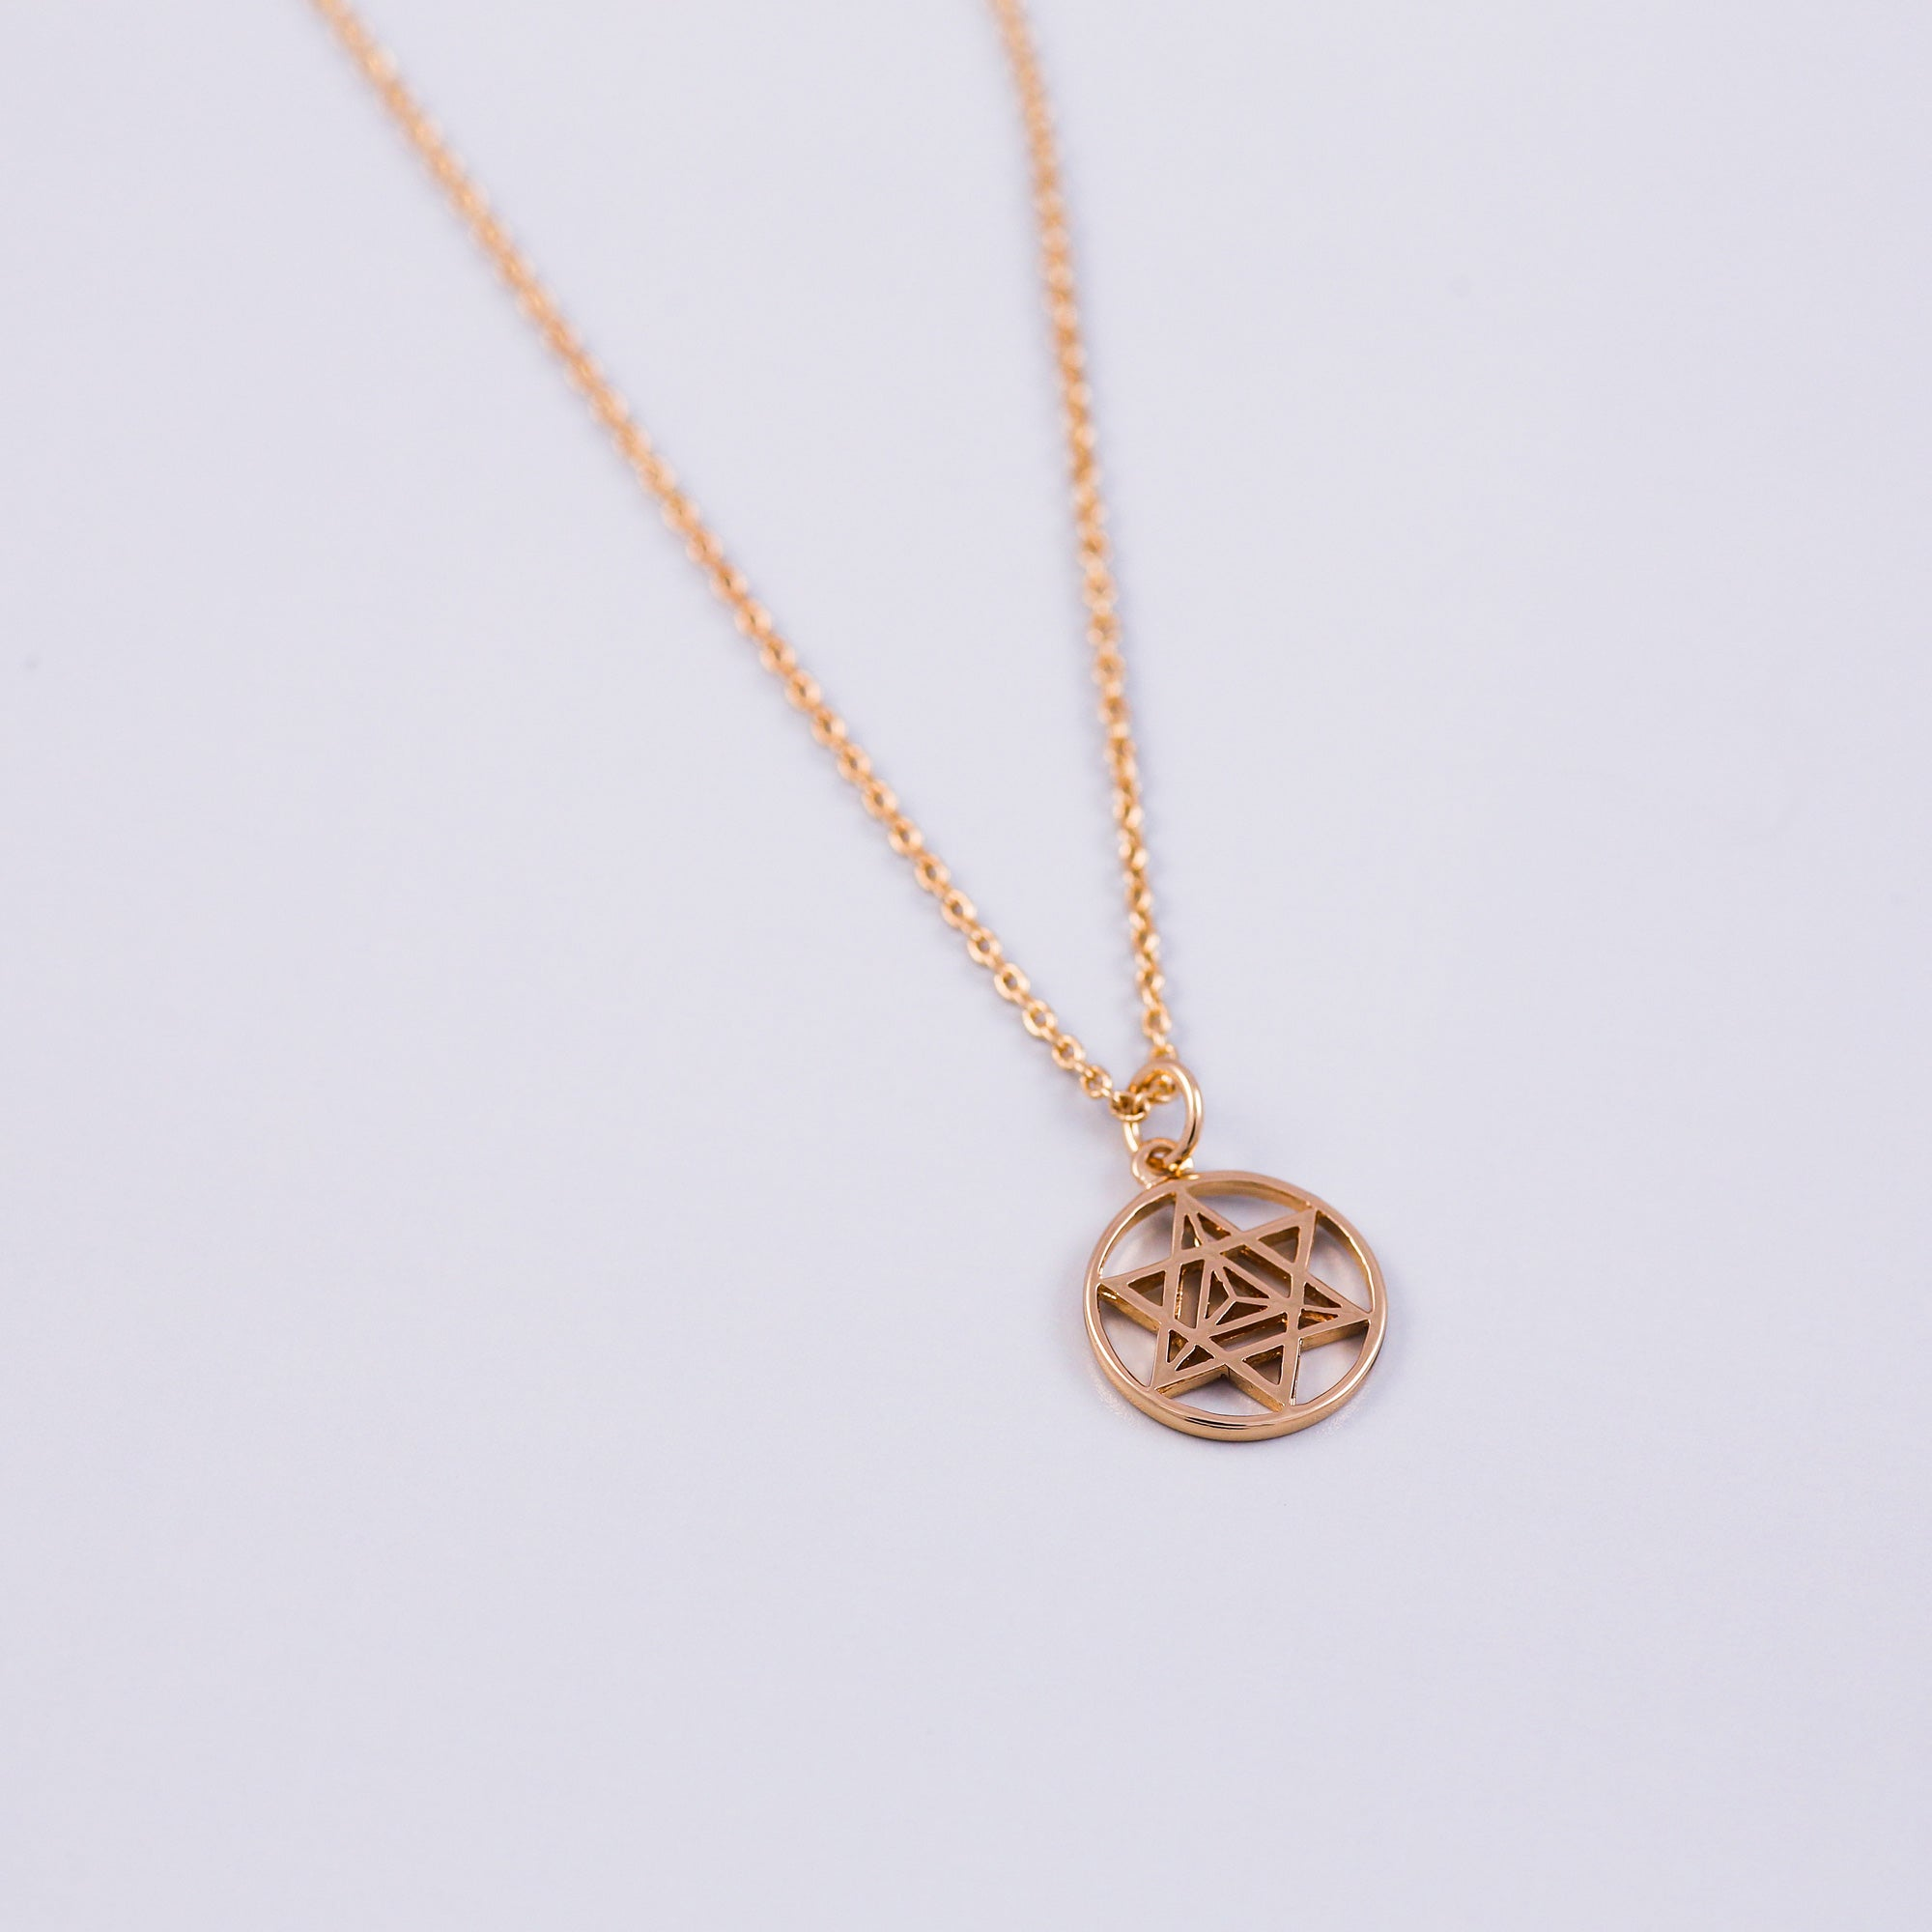 Gold Four Elements Pentagram Necklace